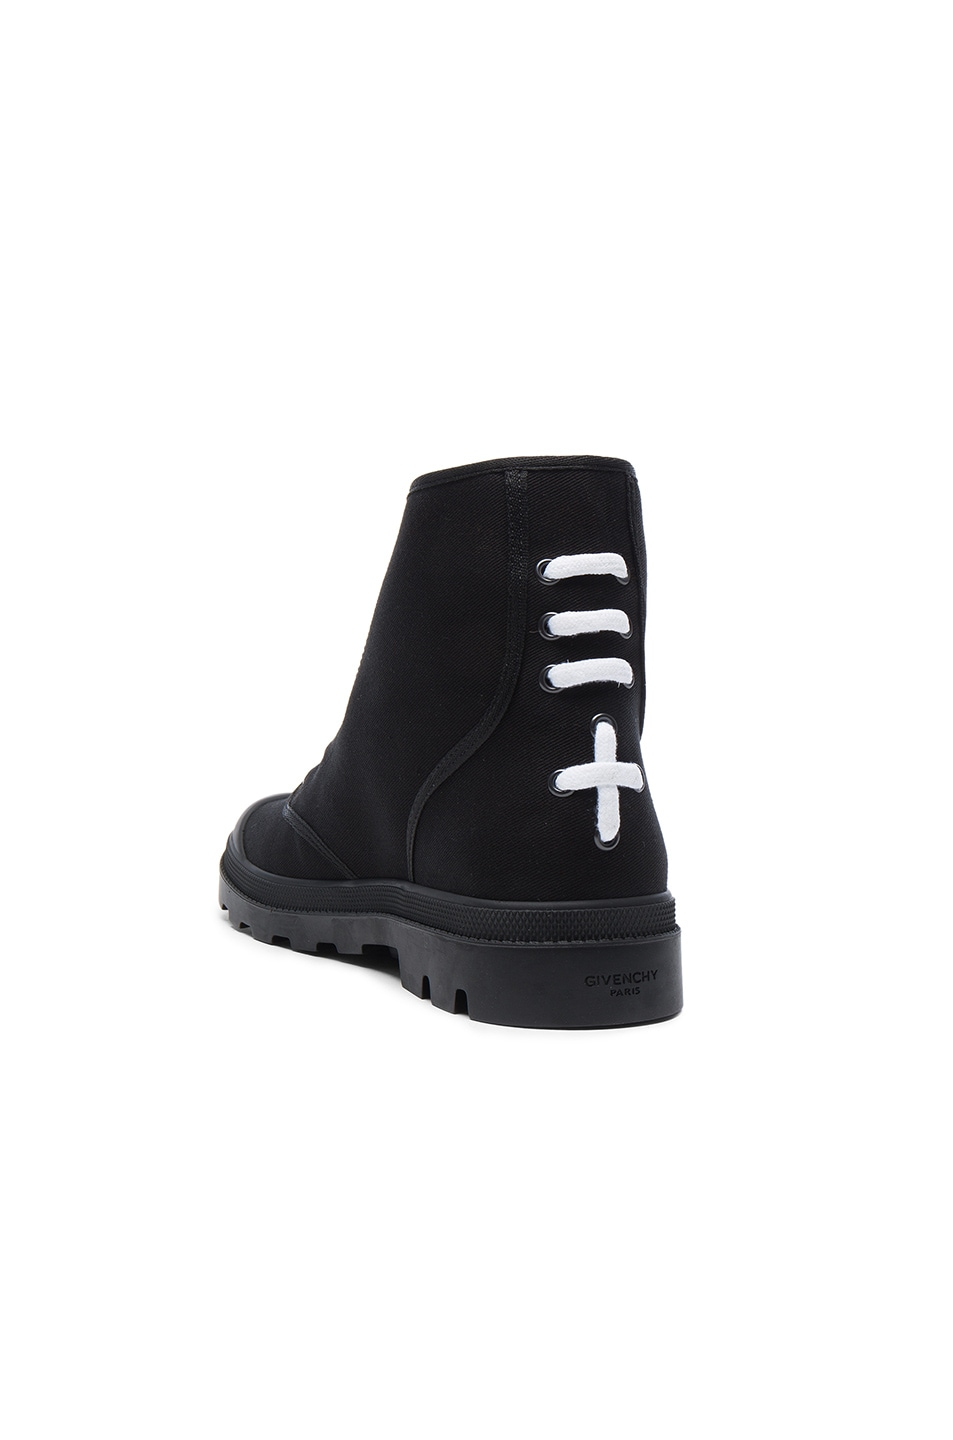 Canvas Star Sneaker Boots in Black Givenchy hClt1VI7d